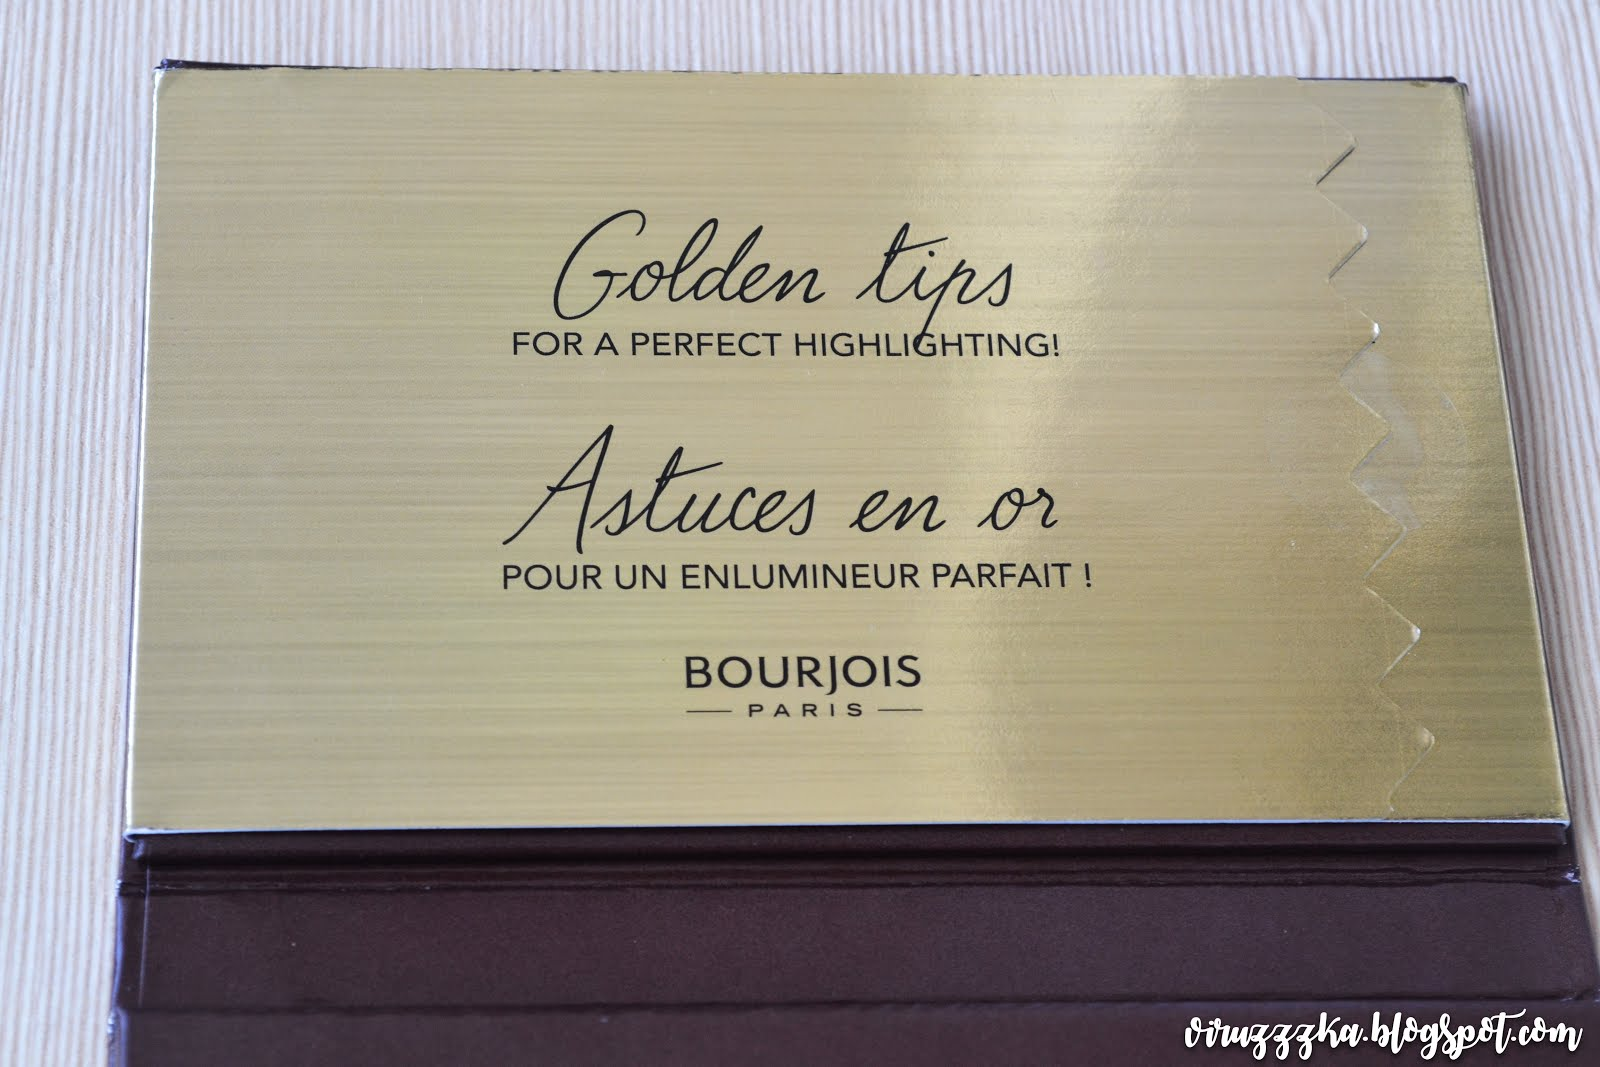 Bourjois Delice de Poudre Bronzing & Highlighting Palette Review Swatches